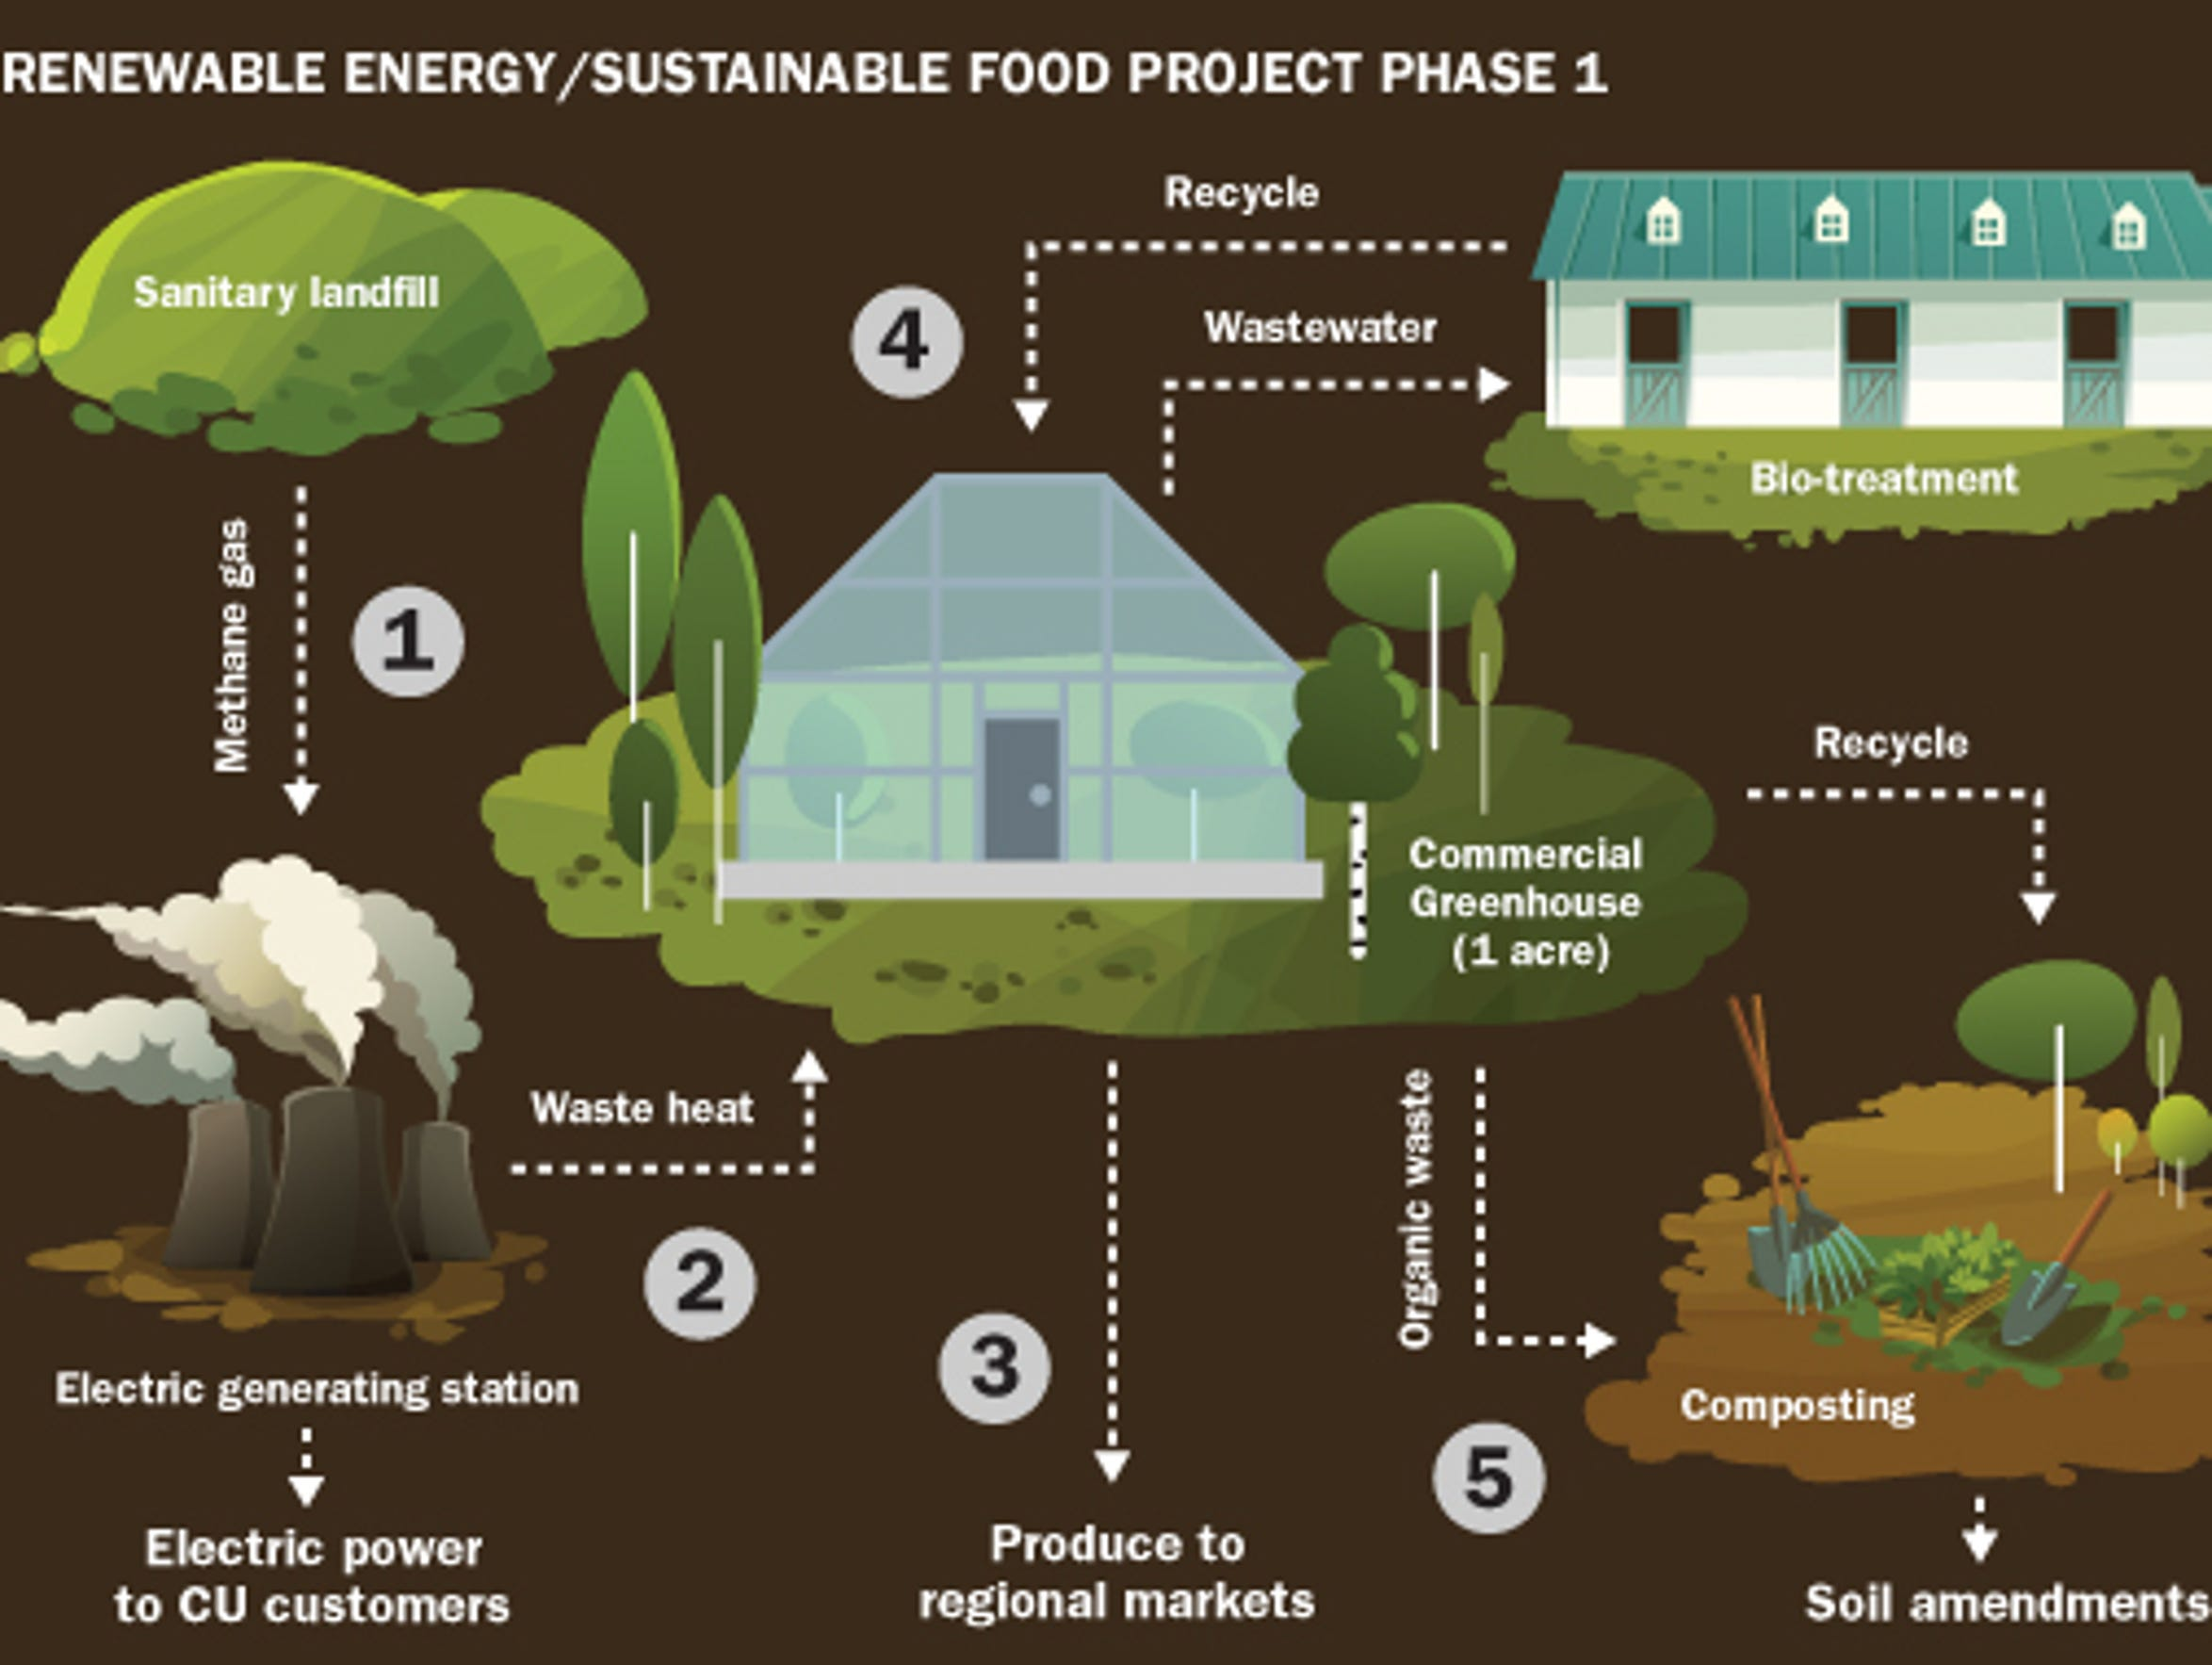 How the renewable energy/sustinable food project will